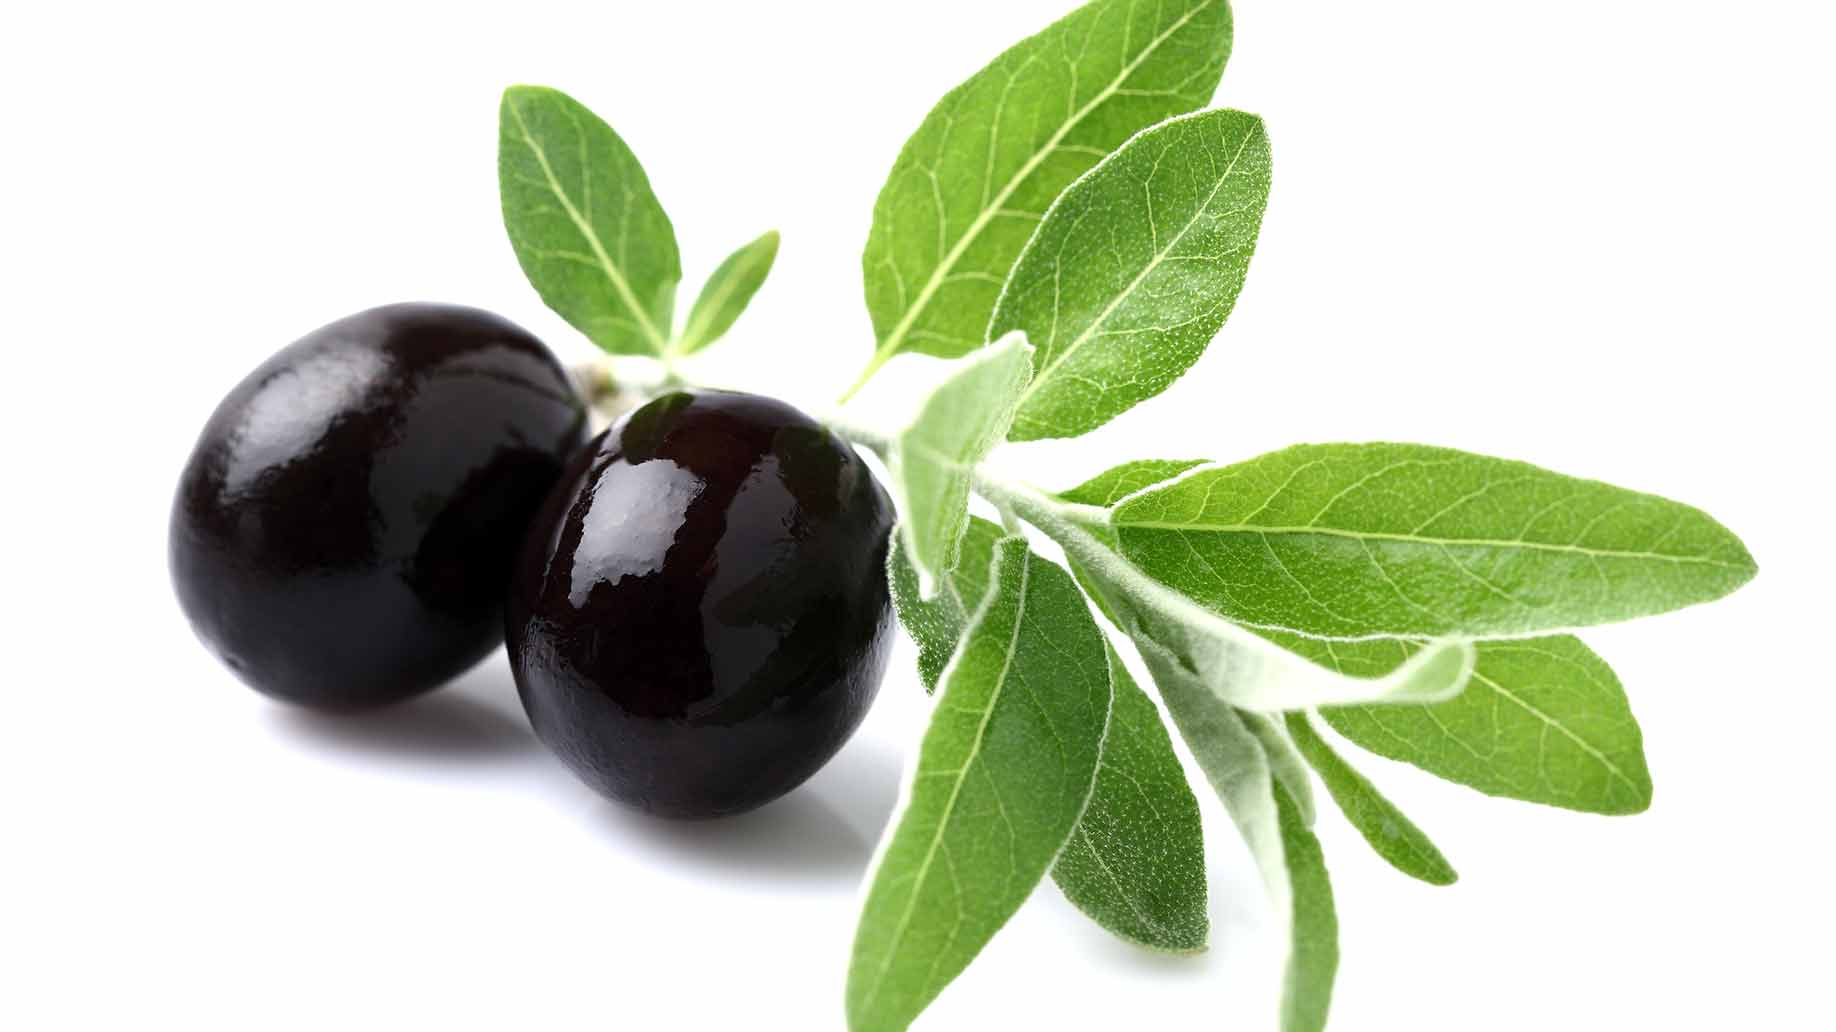 olive leaf extract green leaves black olives